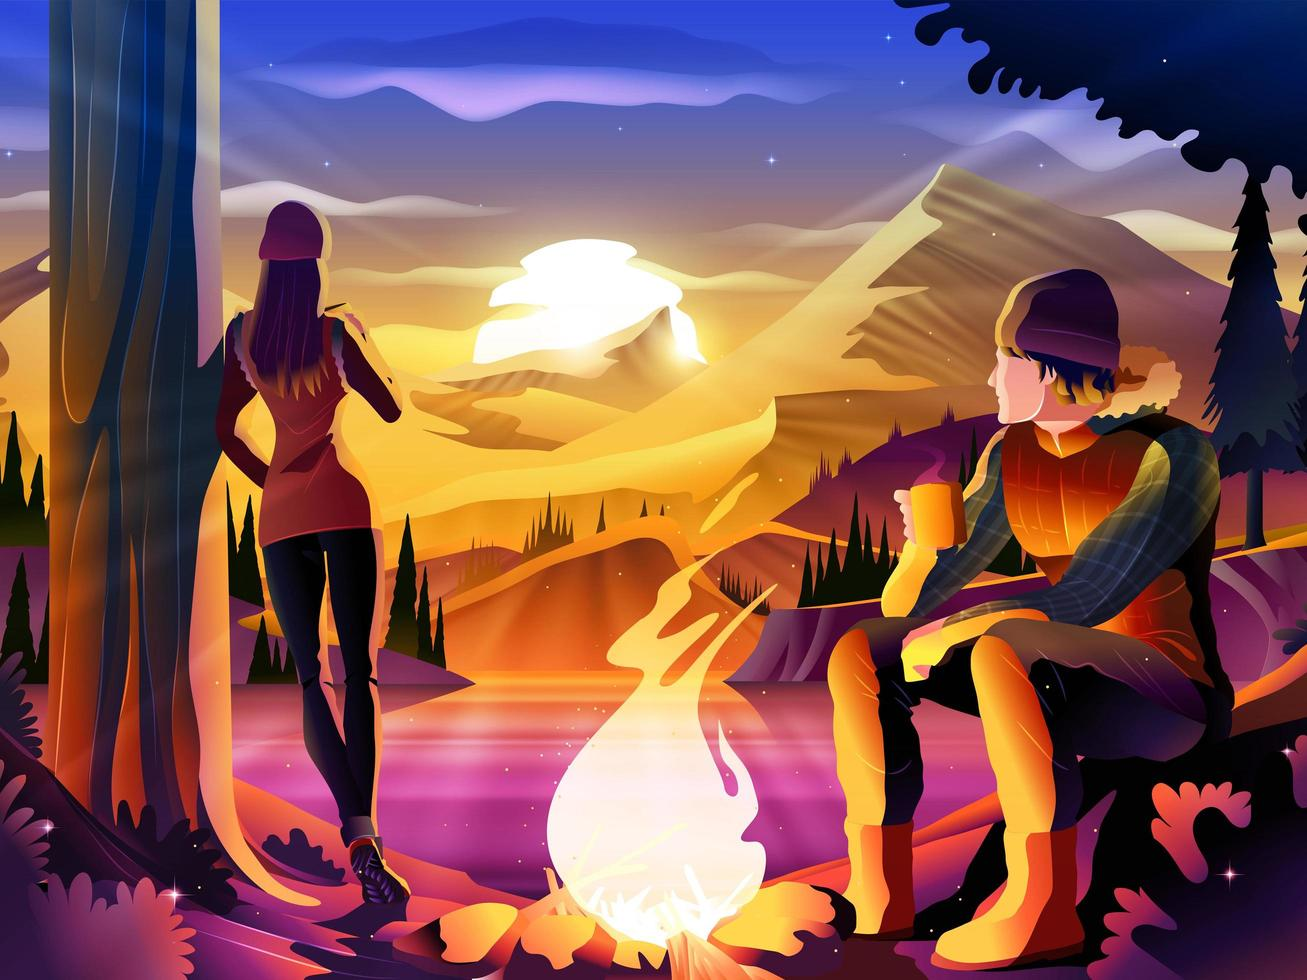 Couple Camping on Lake Surrounded by Mountains vector